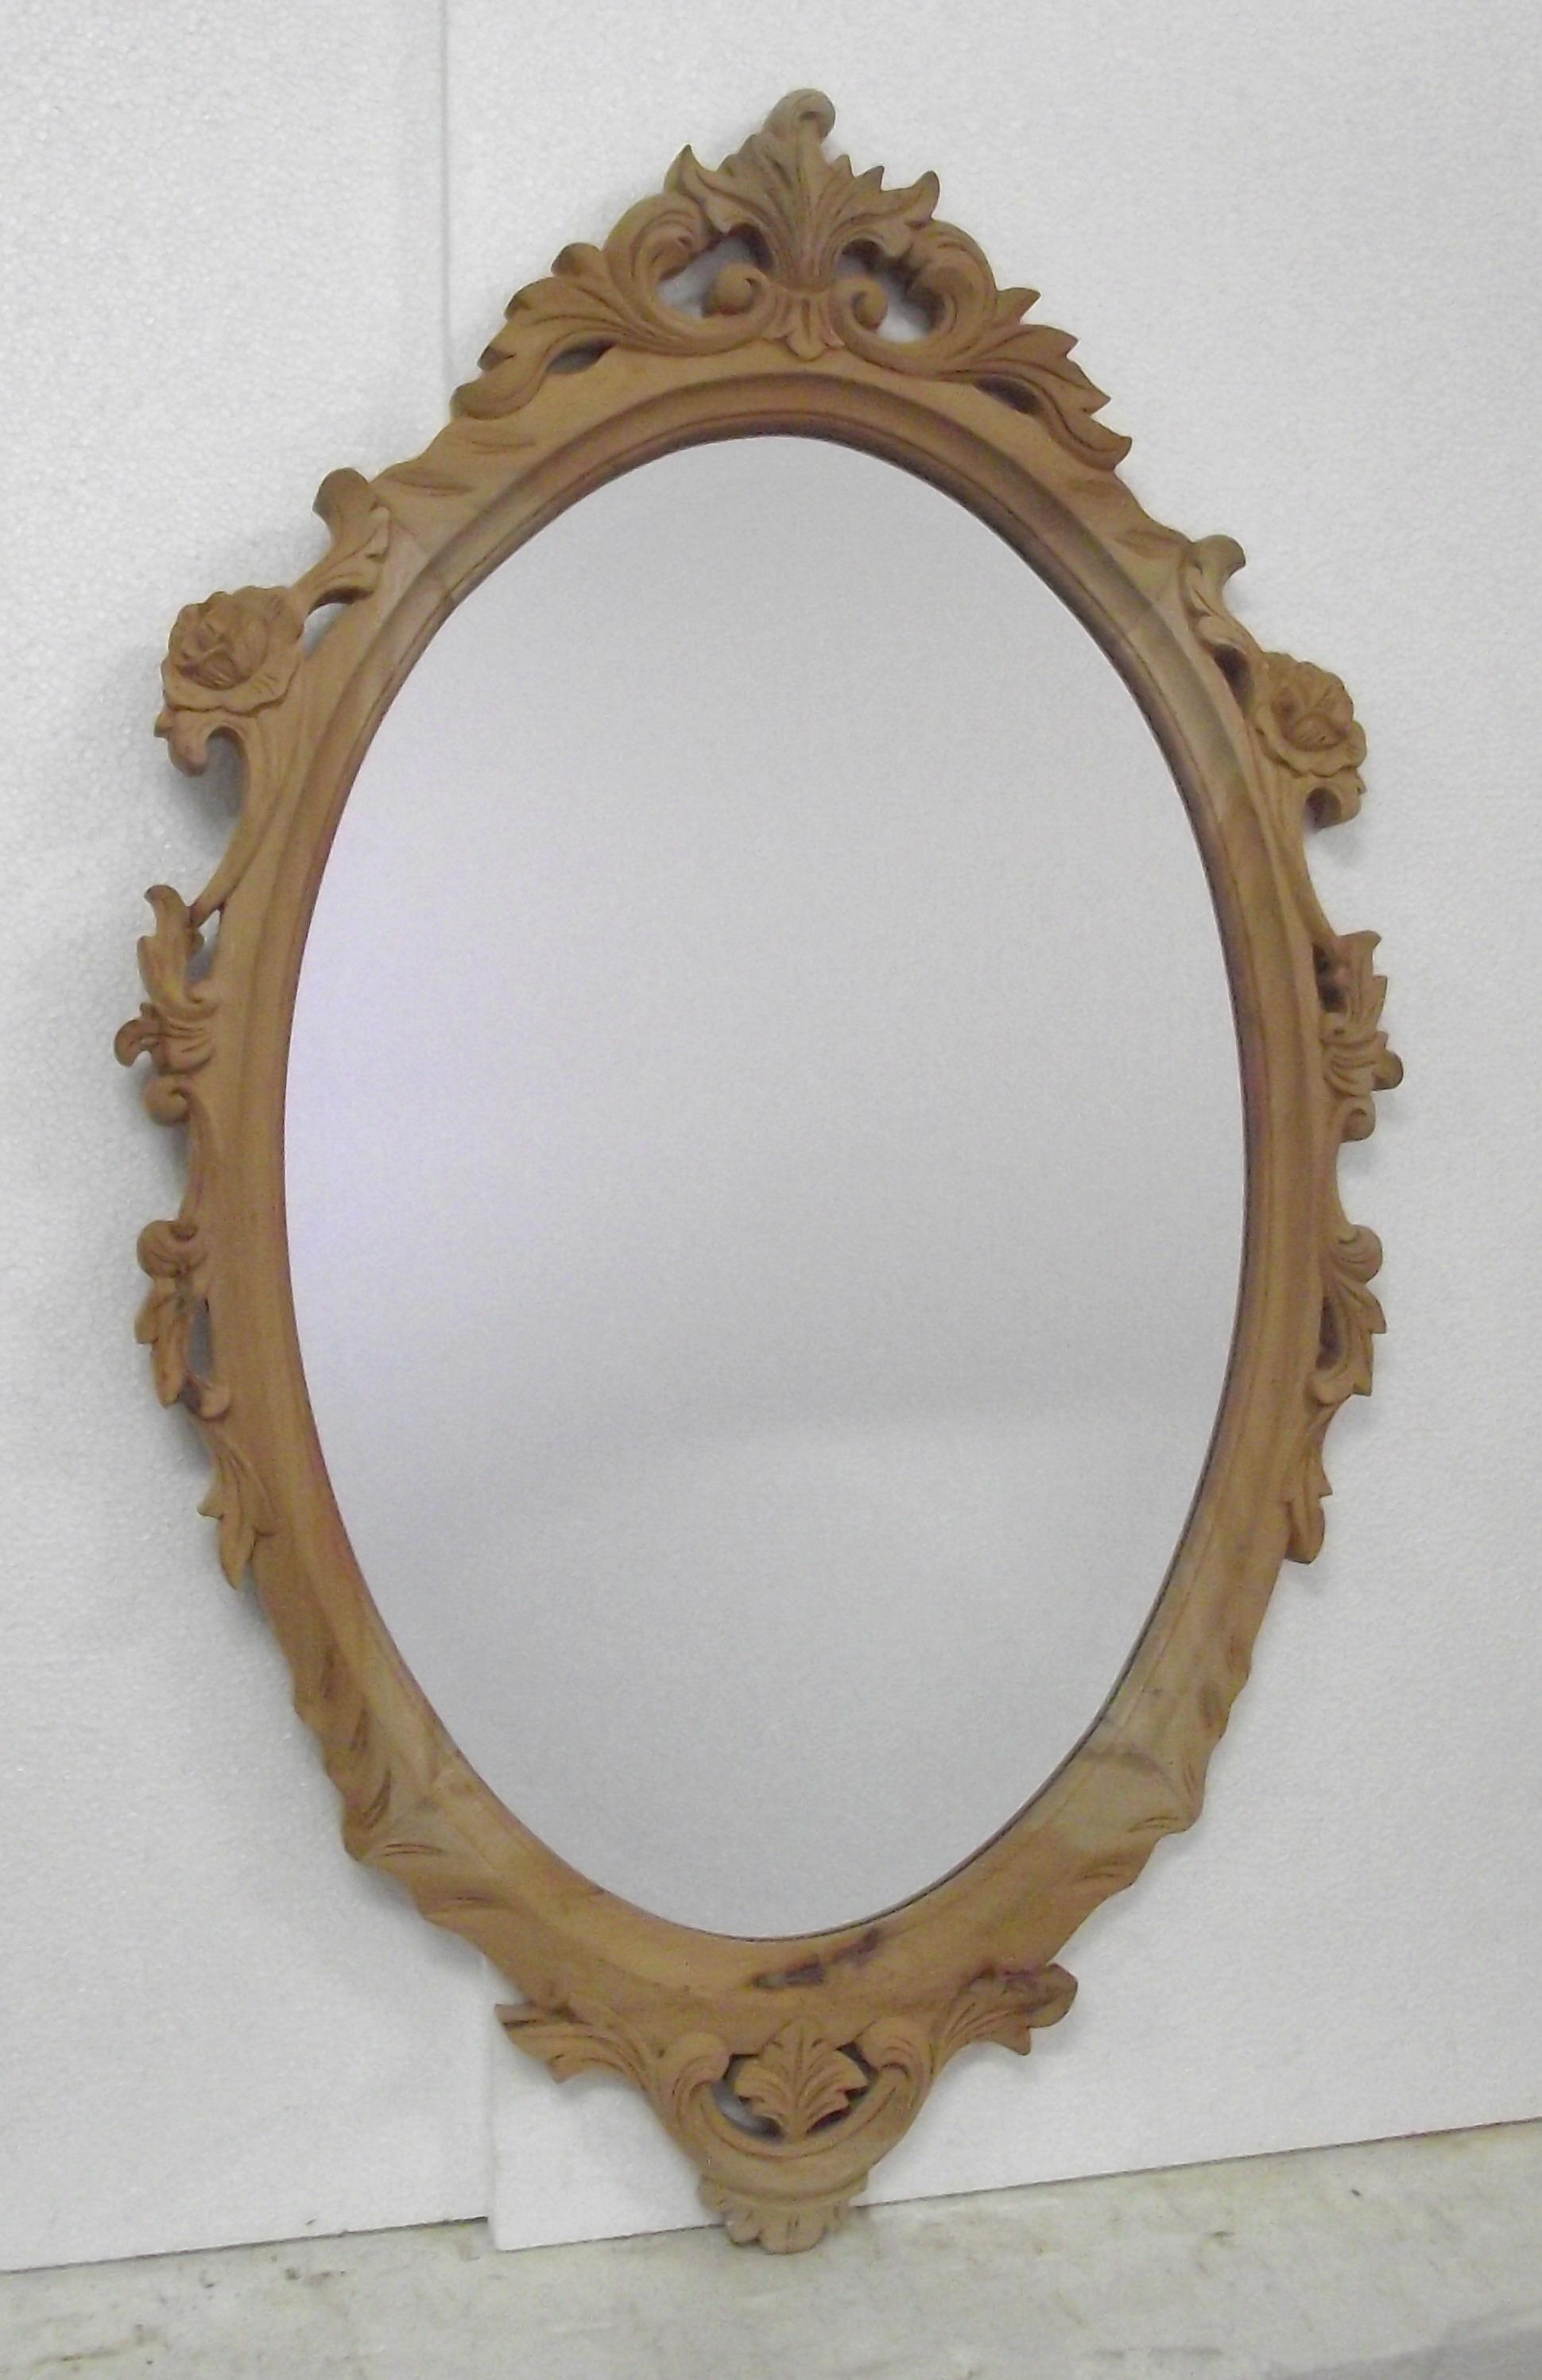 Oval mirror with roses